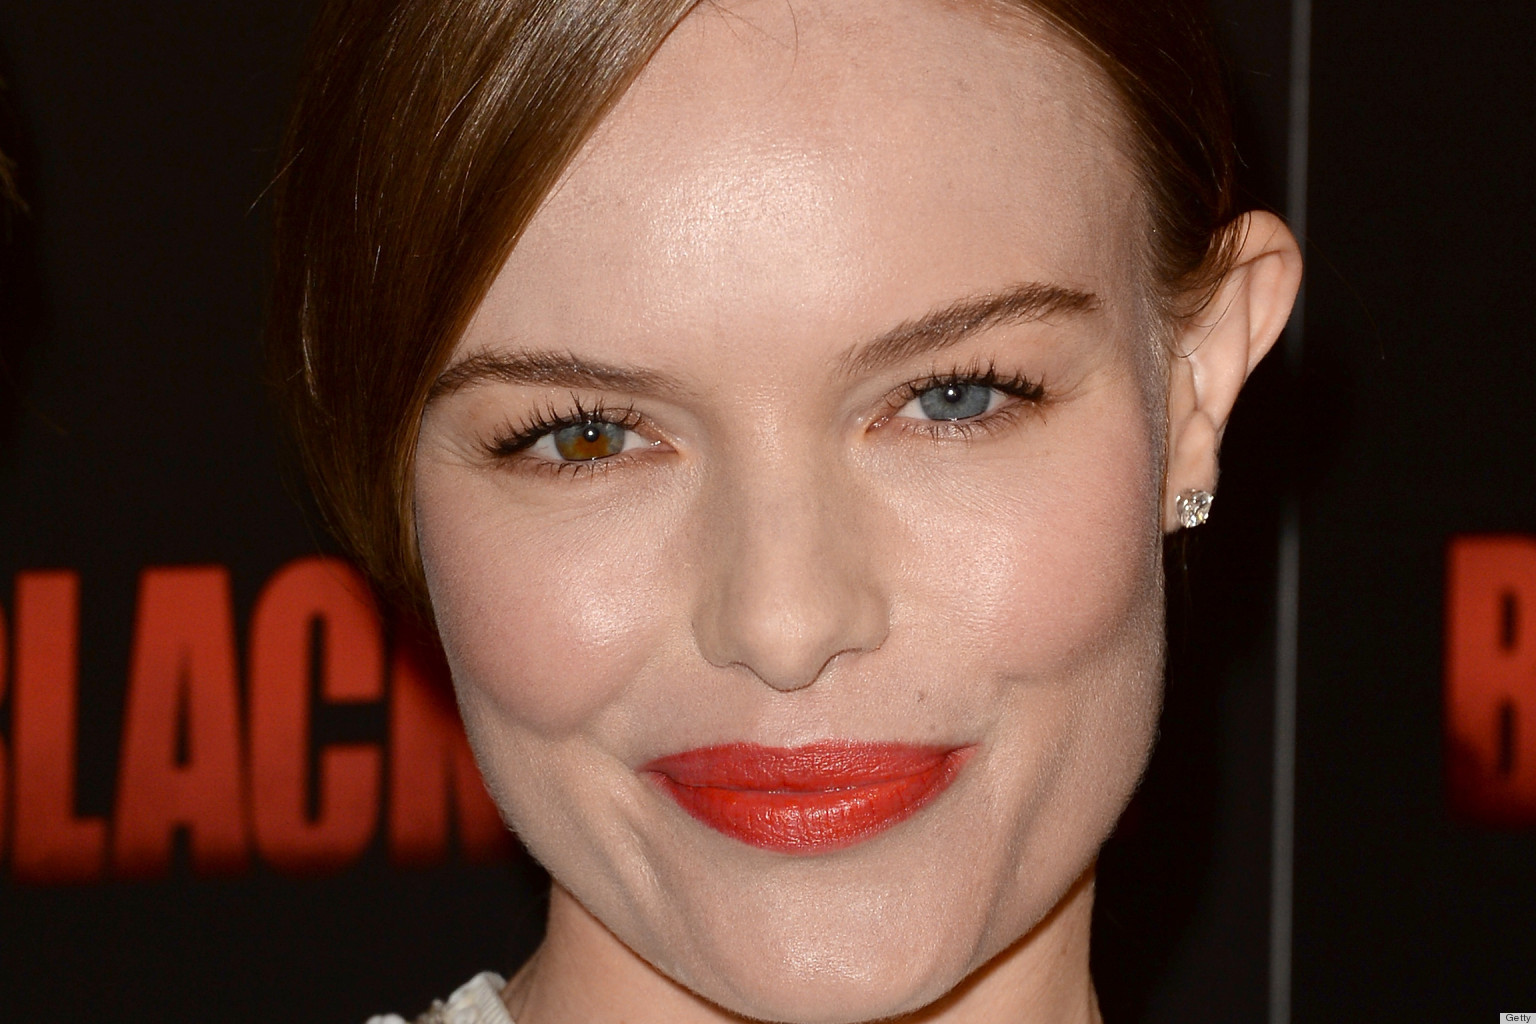 A List Of Celebrities With Two Colored Eyes Heterochromia - HD1536×1024